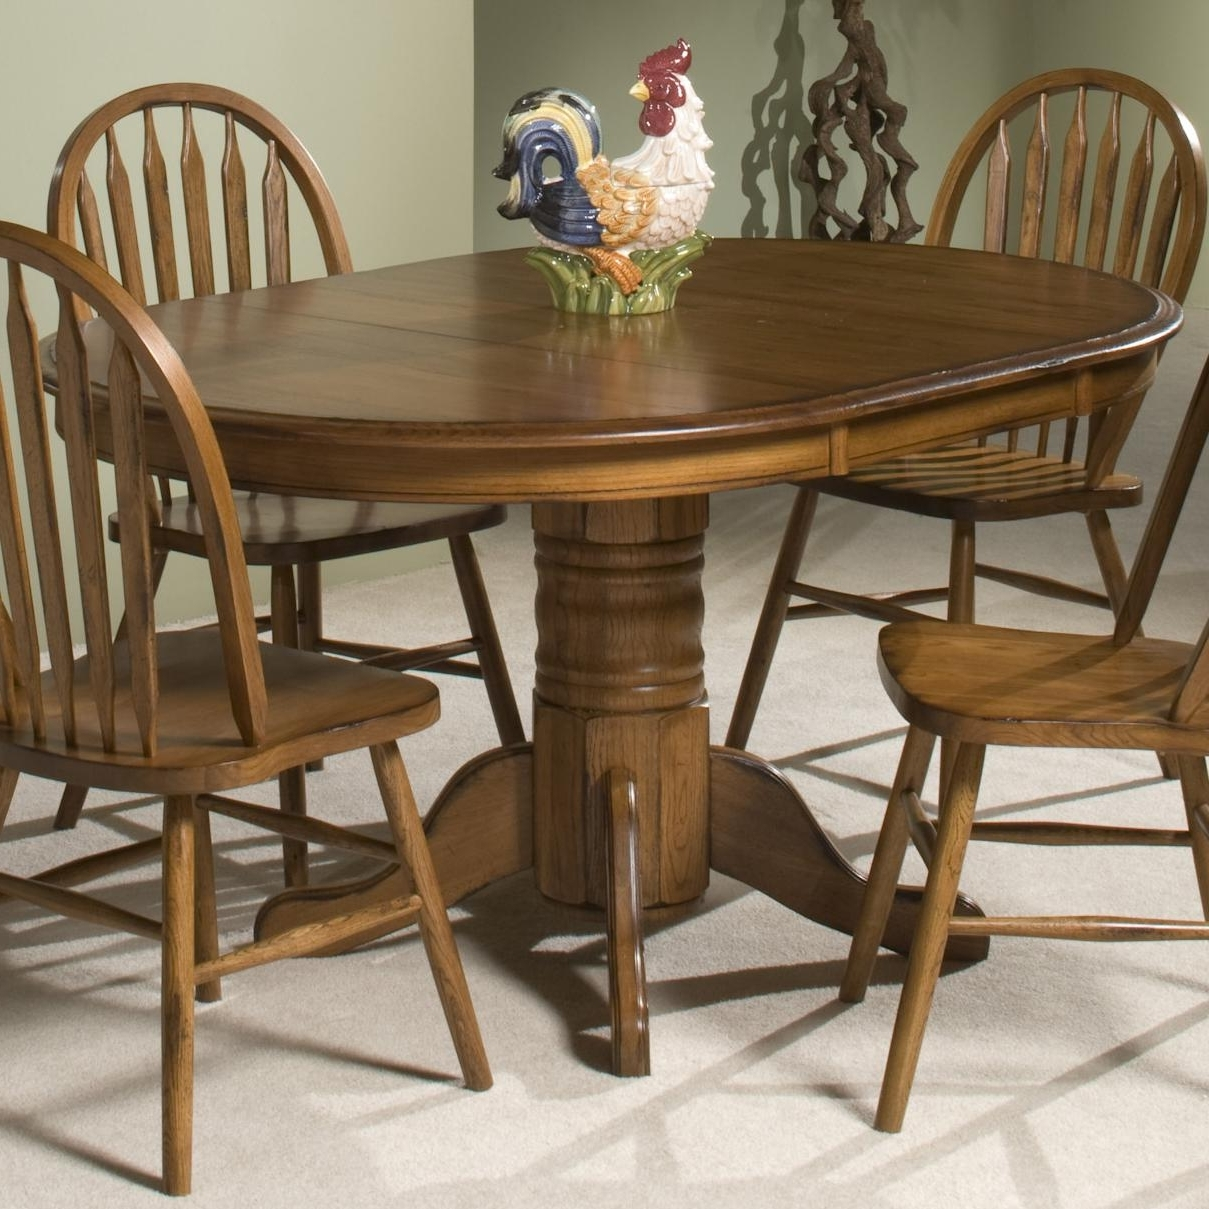 Oak Round Dining Tables And Chairs Regarding Current Intercon Classic Oak Single Pedestal Round Dining Table (View 8 of 25)